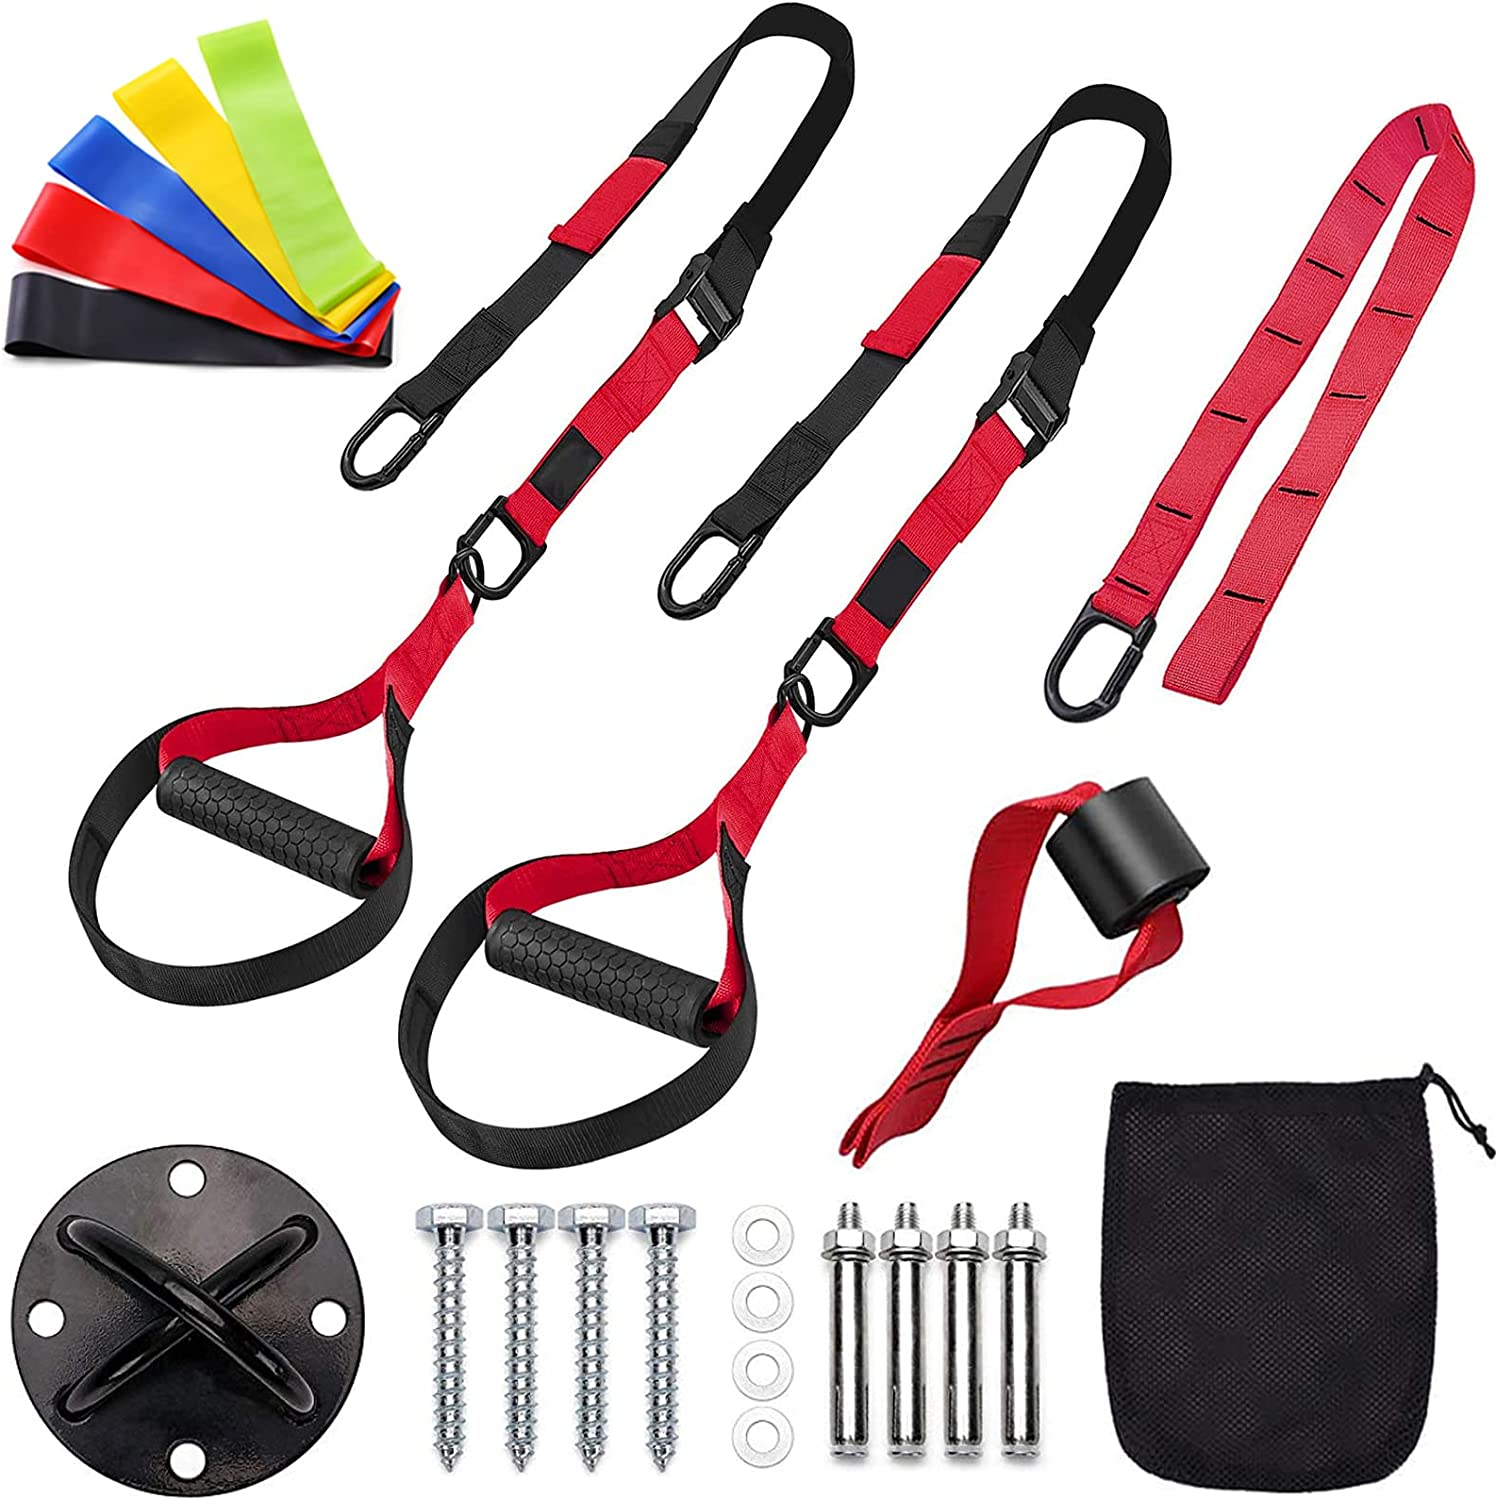 Sfeexun Bodyweight Resistance Training Straps, Suspension Training System, Full Body Workouts Trainer Kit for Home Travel Outdoors, Included Door Anchor Wall Anchor 5 Exercise Bands